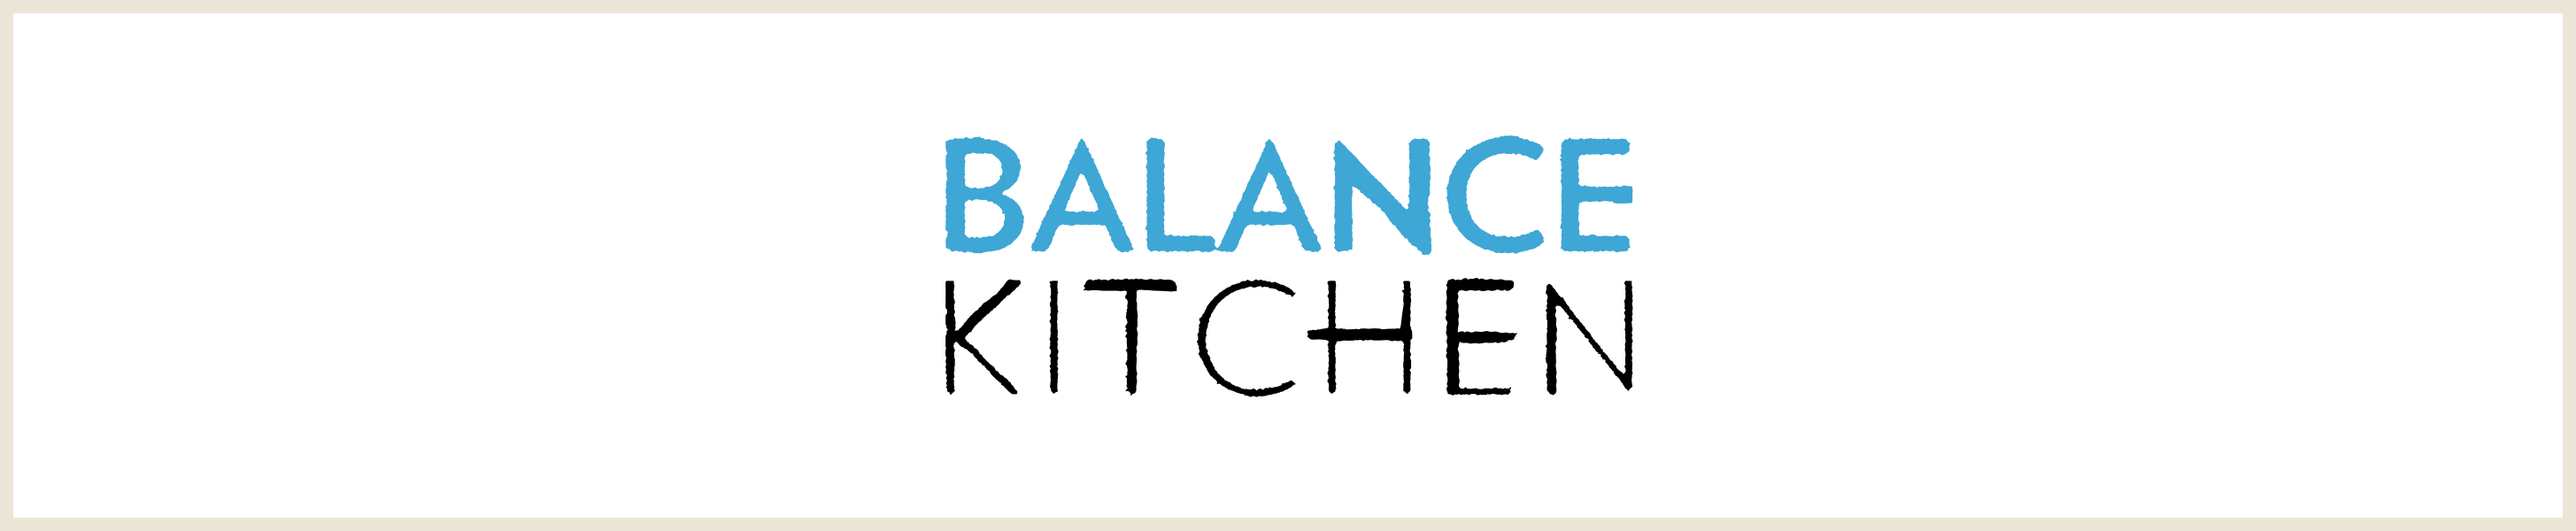 balance-kitchen@3x